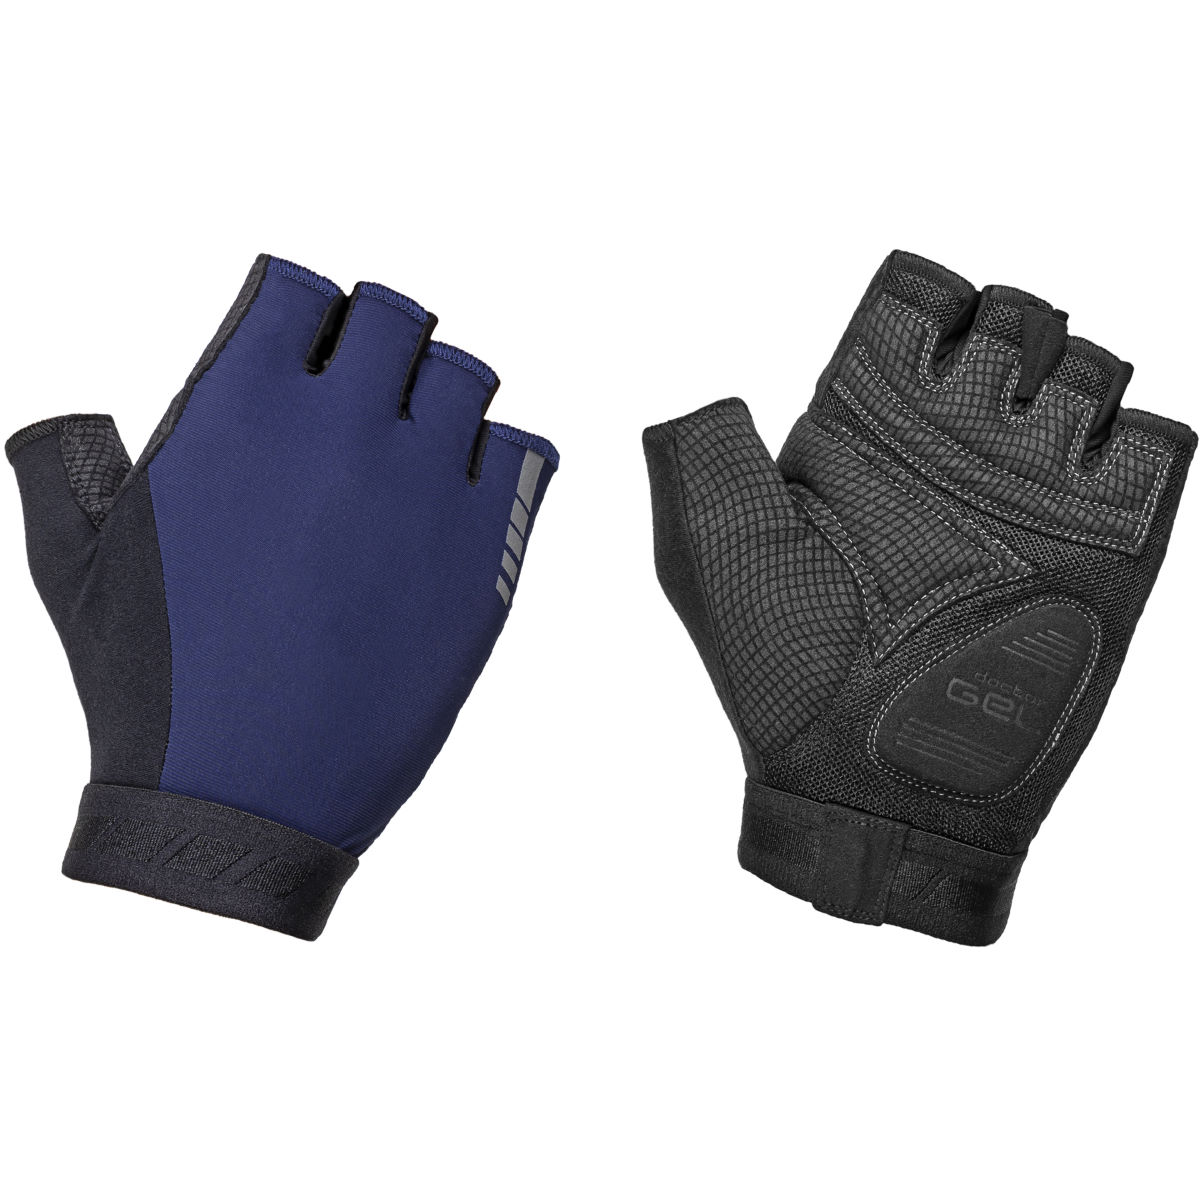 GripGrab WorldCup Short Finger Padded Cycling Gloves - S Navy Blue